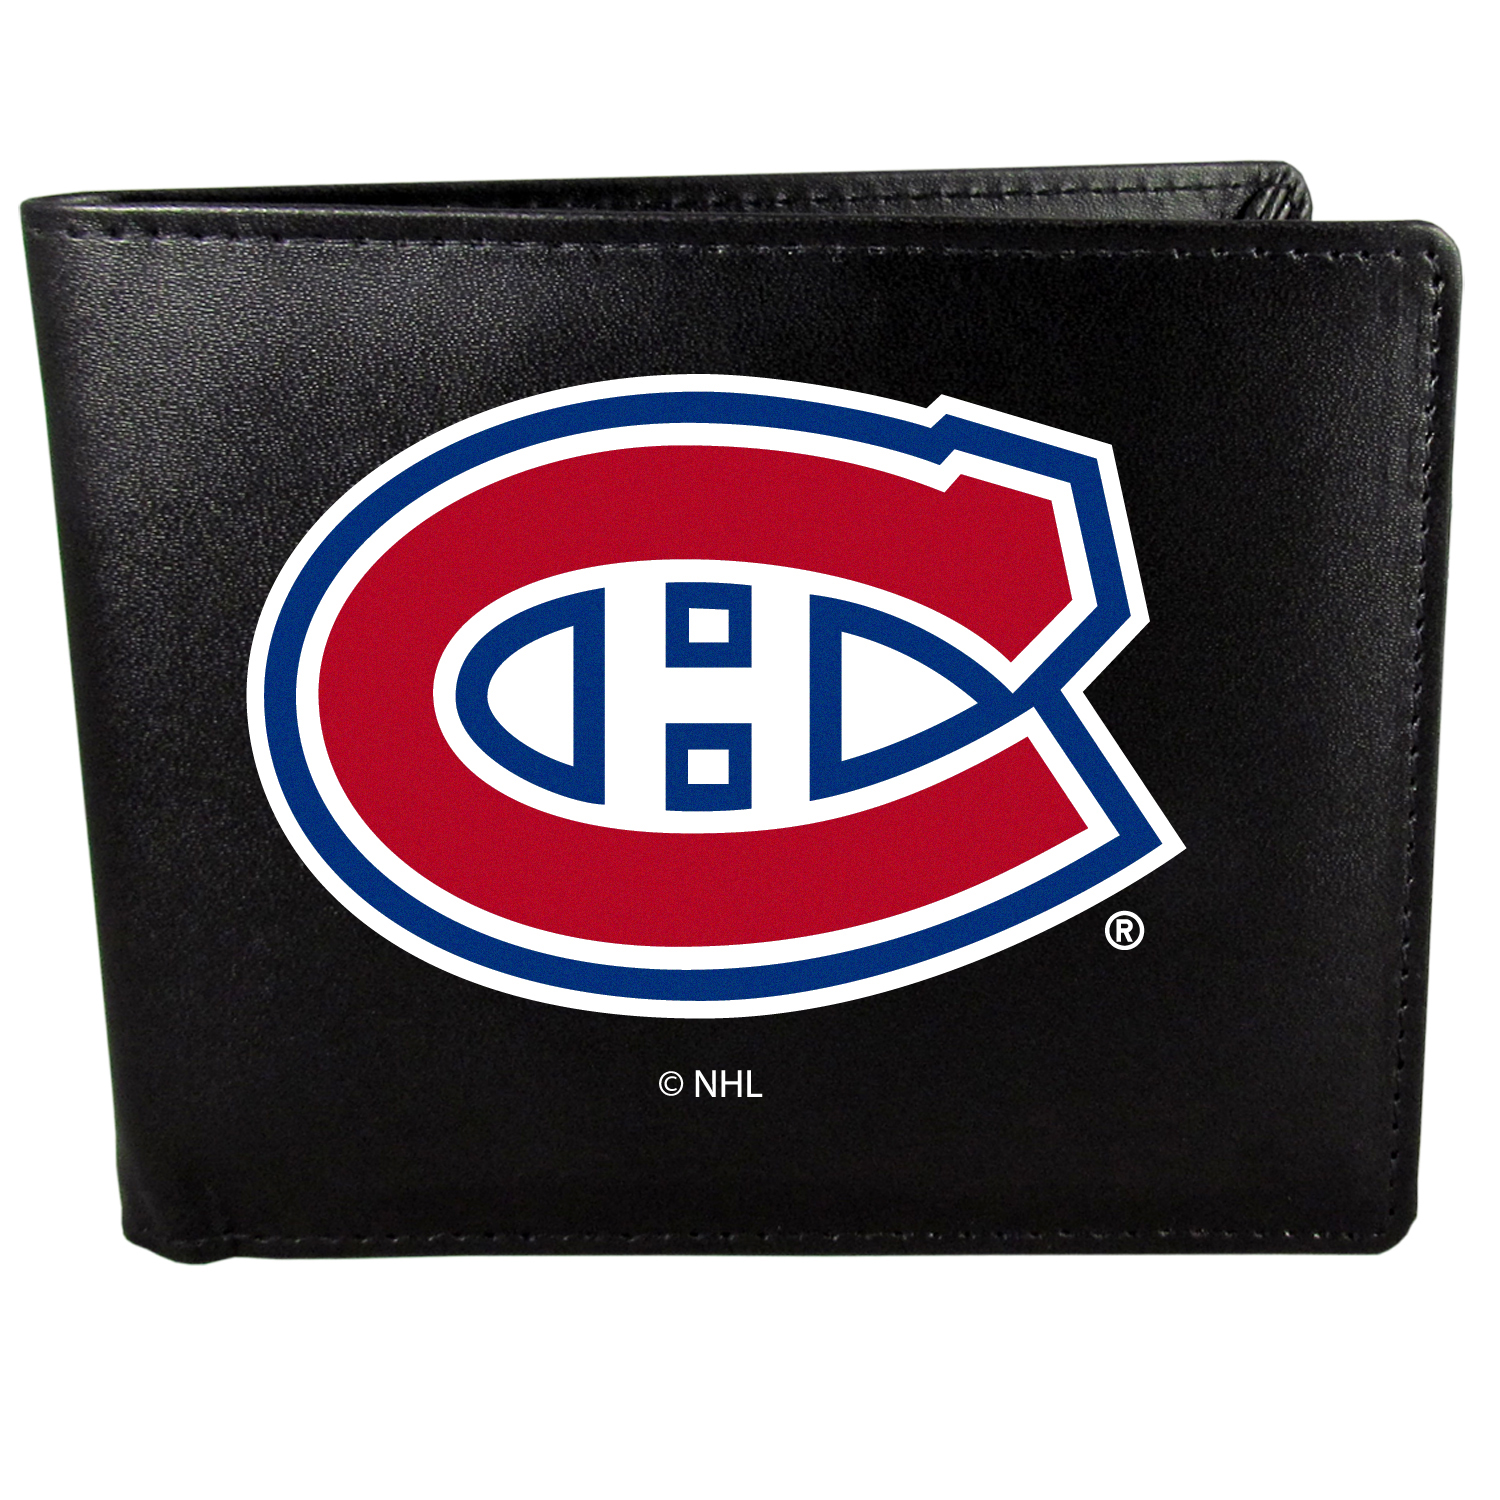 Montreal Canadiens Bi-fold Wallet Large Logo - Sports fans do not have to sacrifice style with this classic bi-fold wallet that sports the Montreal Canadiens?extra large logo. This men's fashion accessory has a leather grain look and expert craftmanship for a quality wallet at a great price. The wallet features inner credit card slots, windowed ID slot and a large billfold pocket. The front of the wallet features a printed team logo.